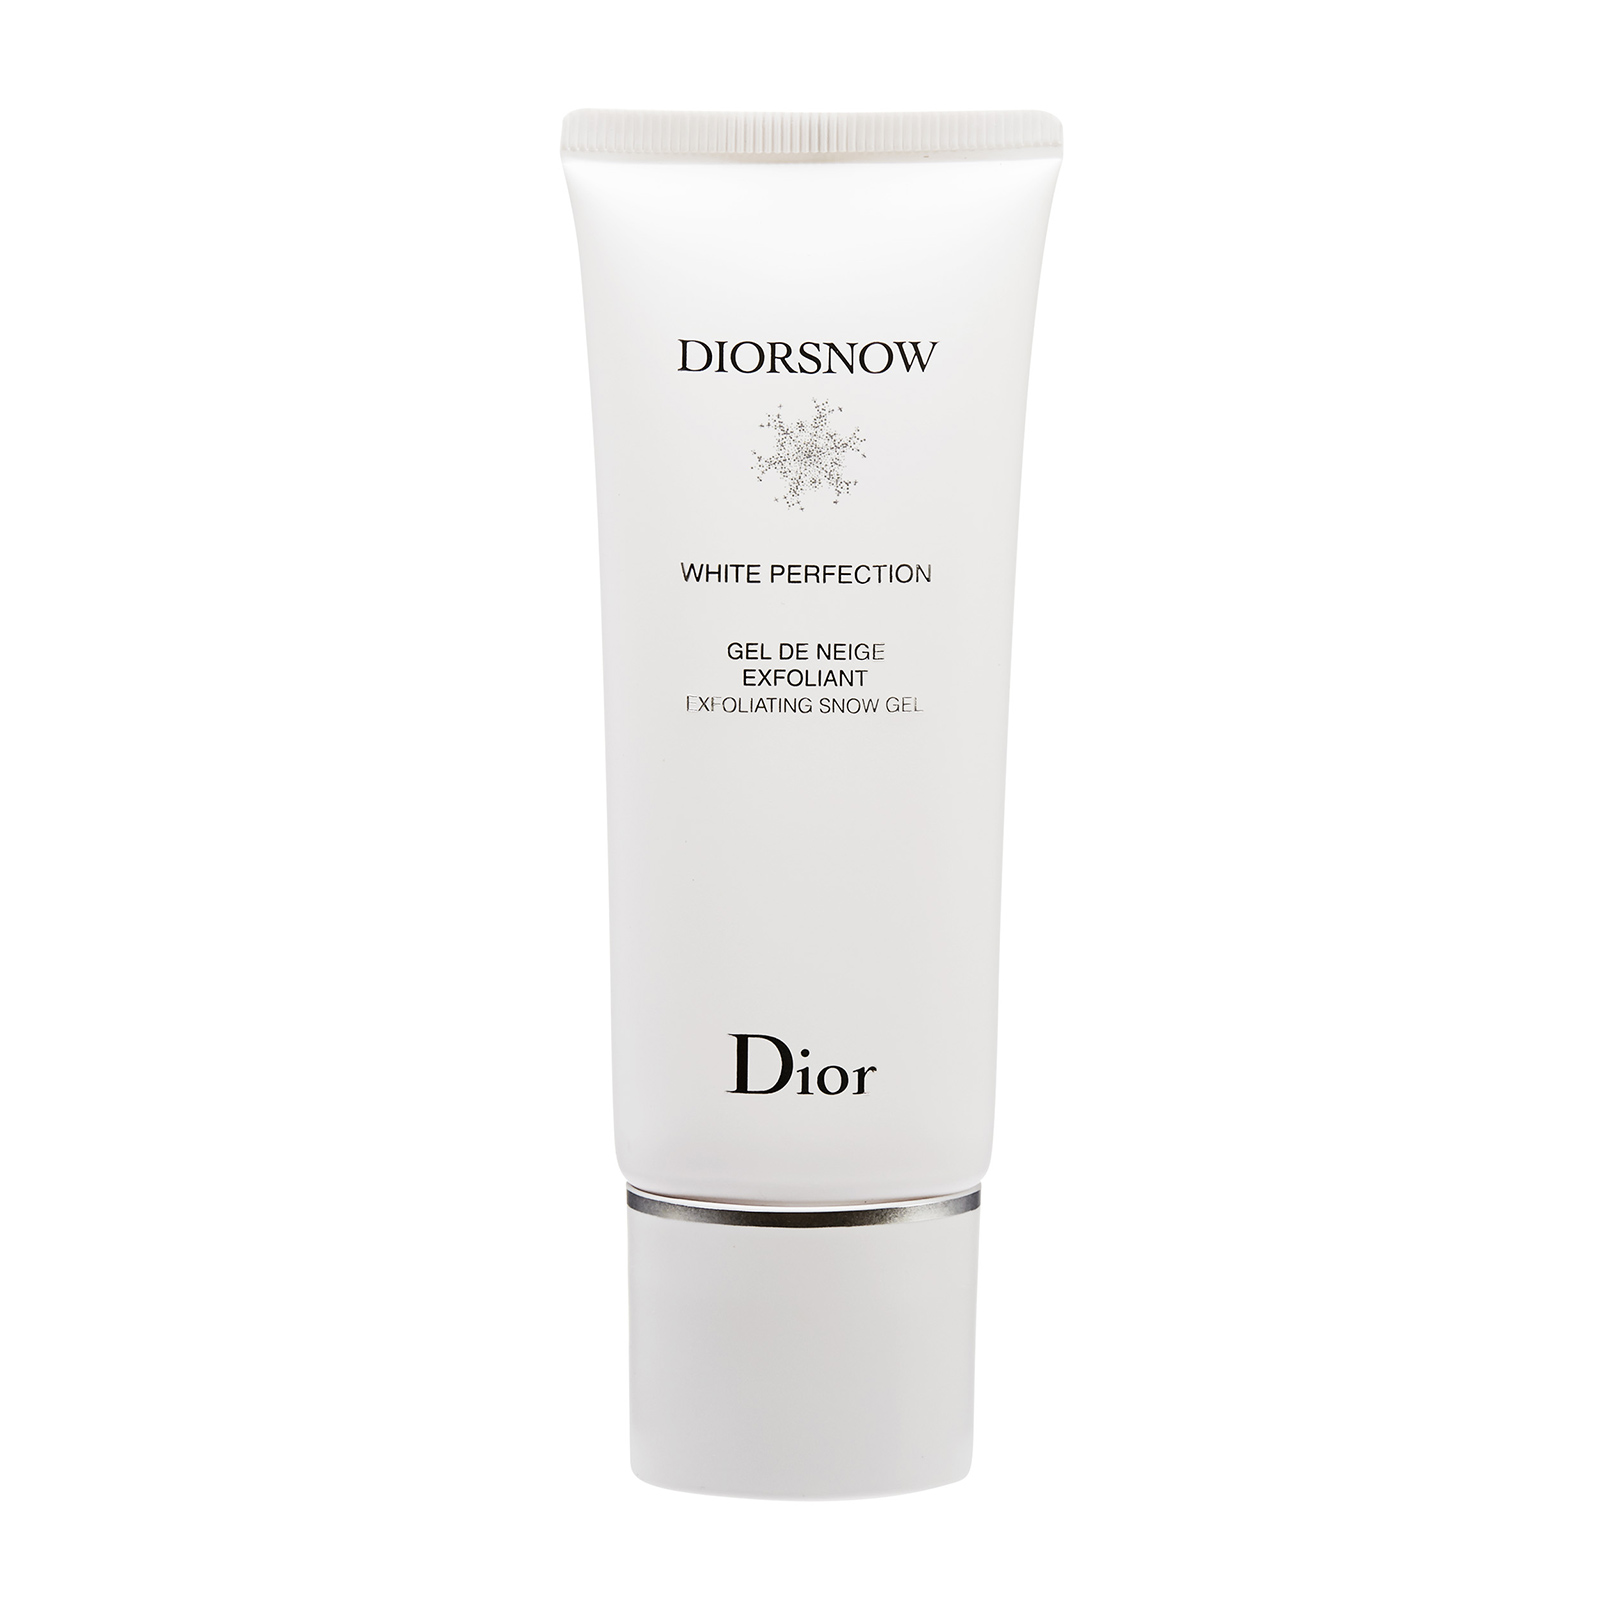 Christian Dior DiorSnow White Perfection Exfoliating Snow Gel 2.6oz, 75ml